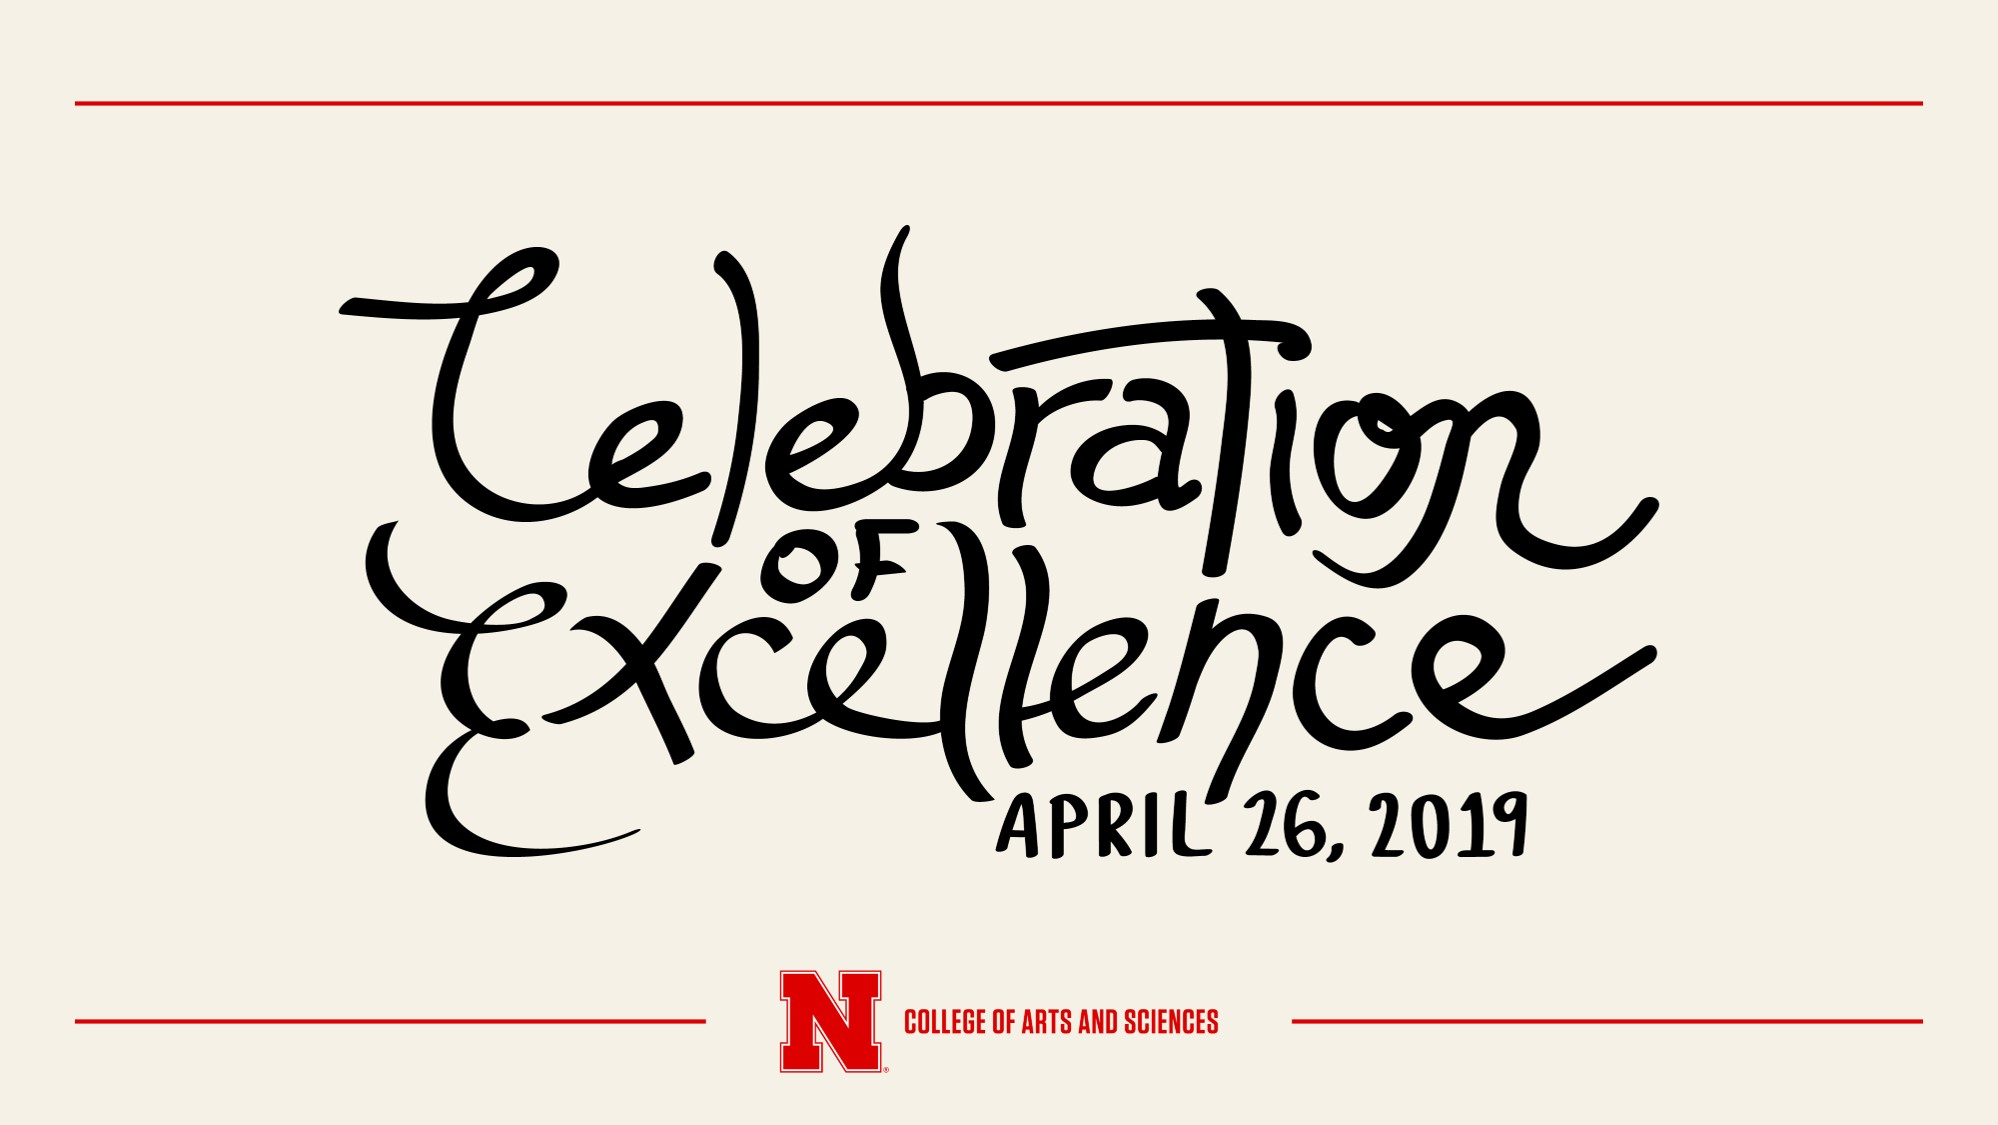 Photo Credit: Celebration of Excellence graphic